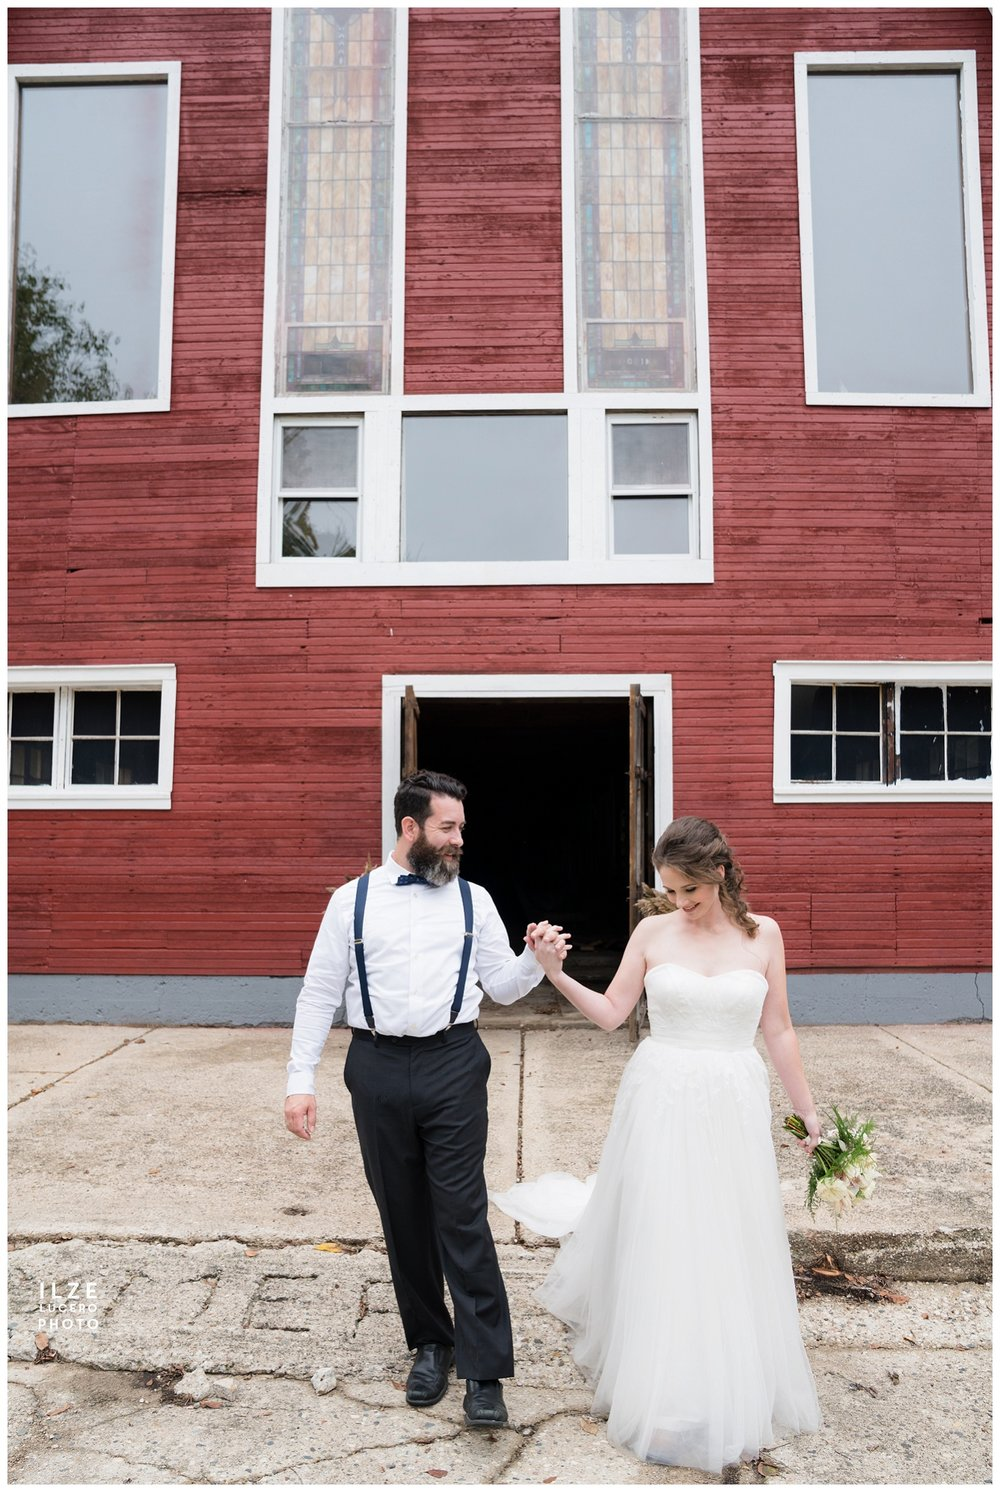 Clarkston Wedding  Barn Venue with Church Windows